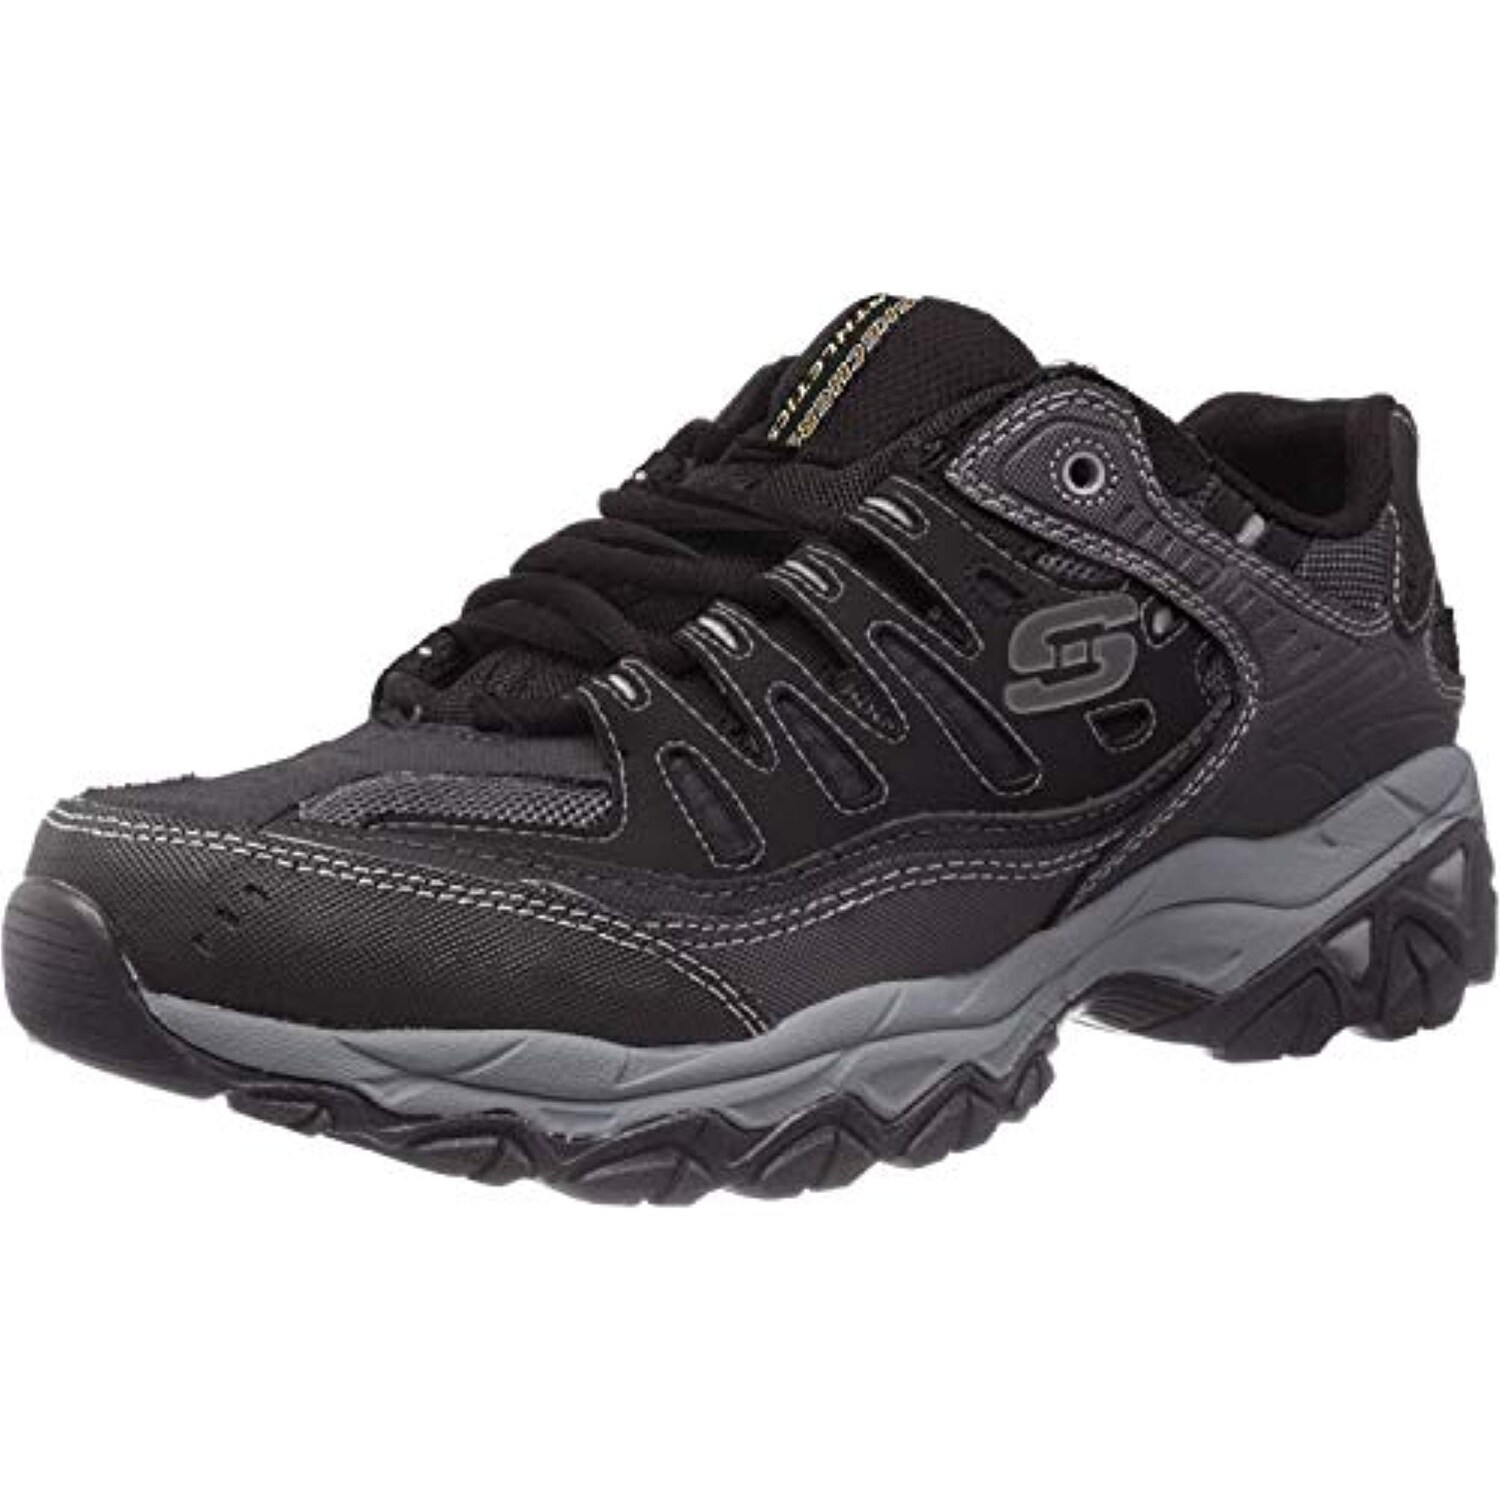 Size 9.5 Skechers Shoes Out of Stock Included | Shop our